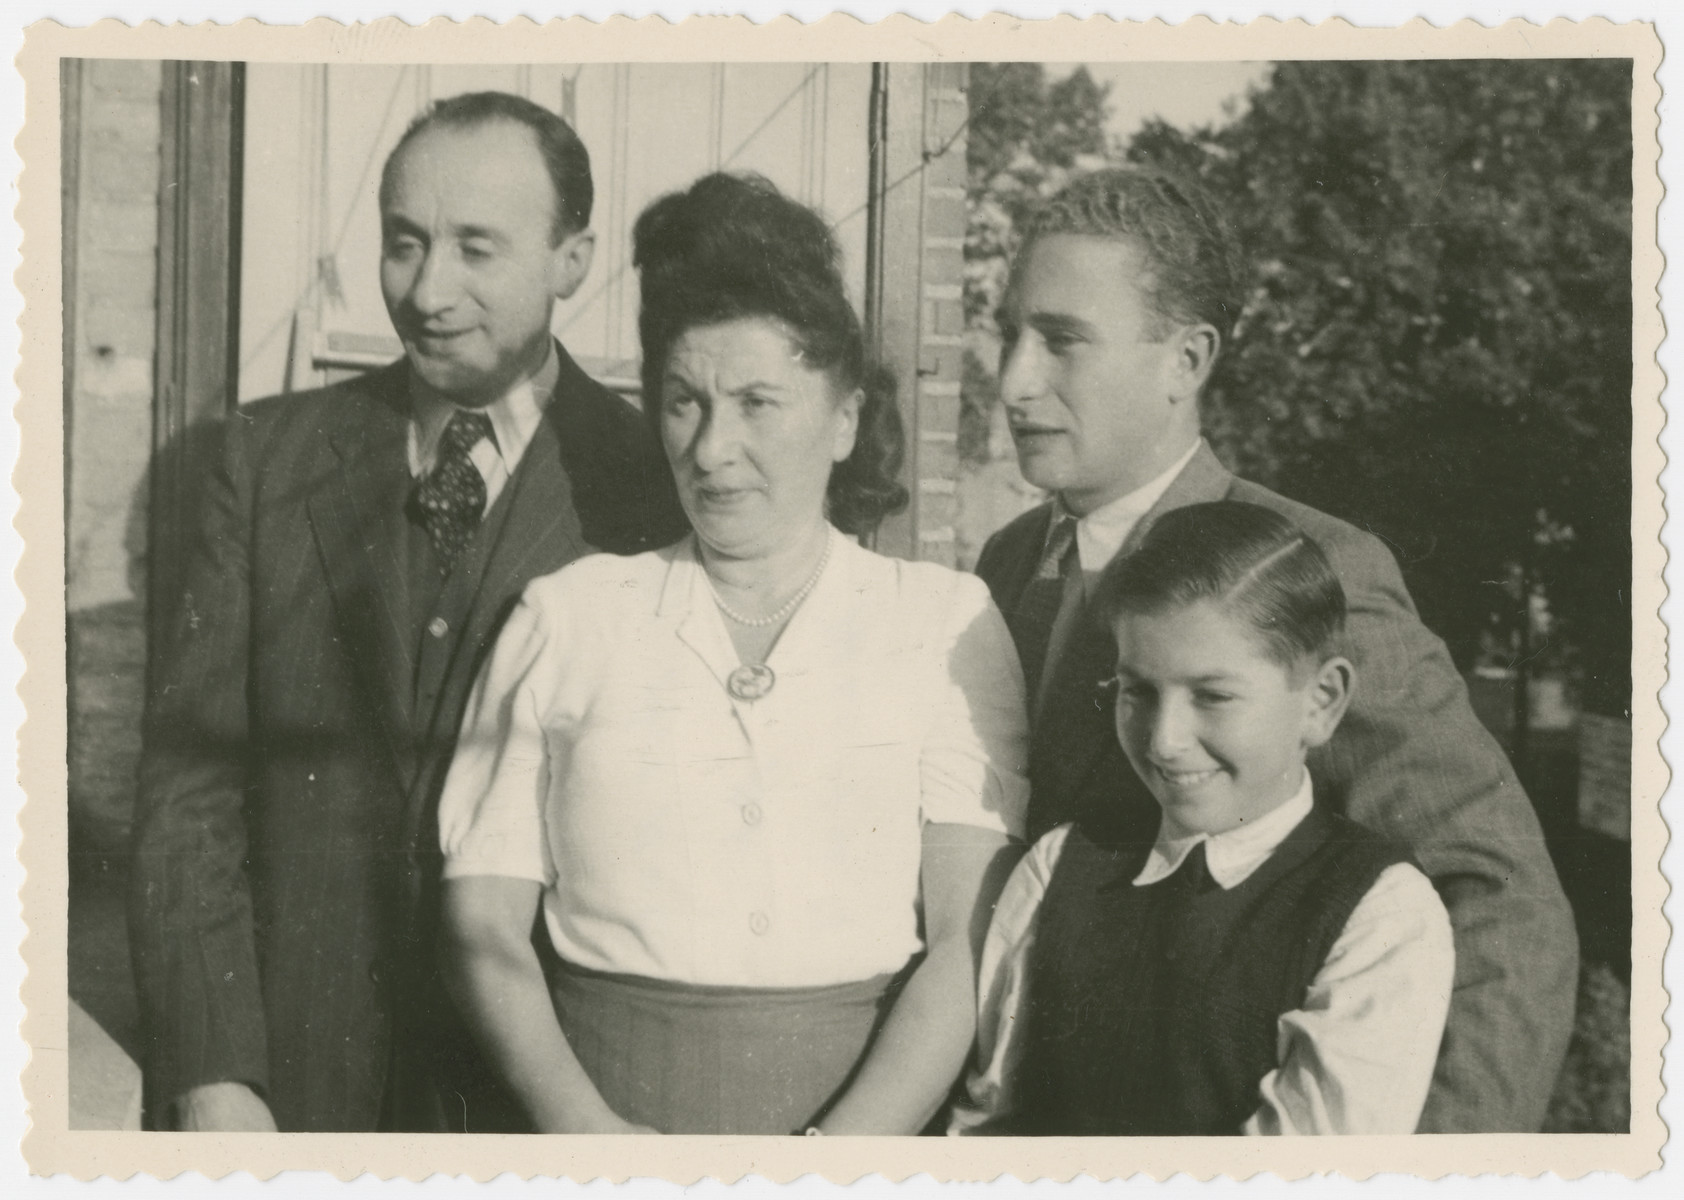 Portrait of the Elbaum/Nusbaum family in their home in Brussels.  From left to right are Chiel Elbaum (the donor's step-father), Regina Nusbaum Elbaum (the donor's mother), Chaim Elbaum (the donor's step-brother) and Mark Nusbaum.